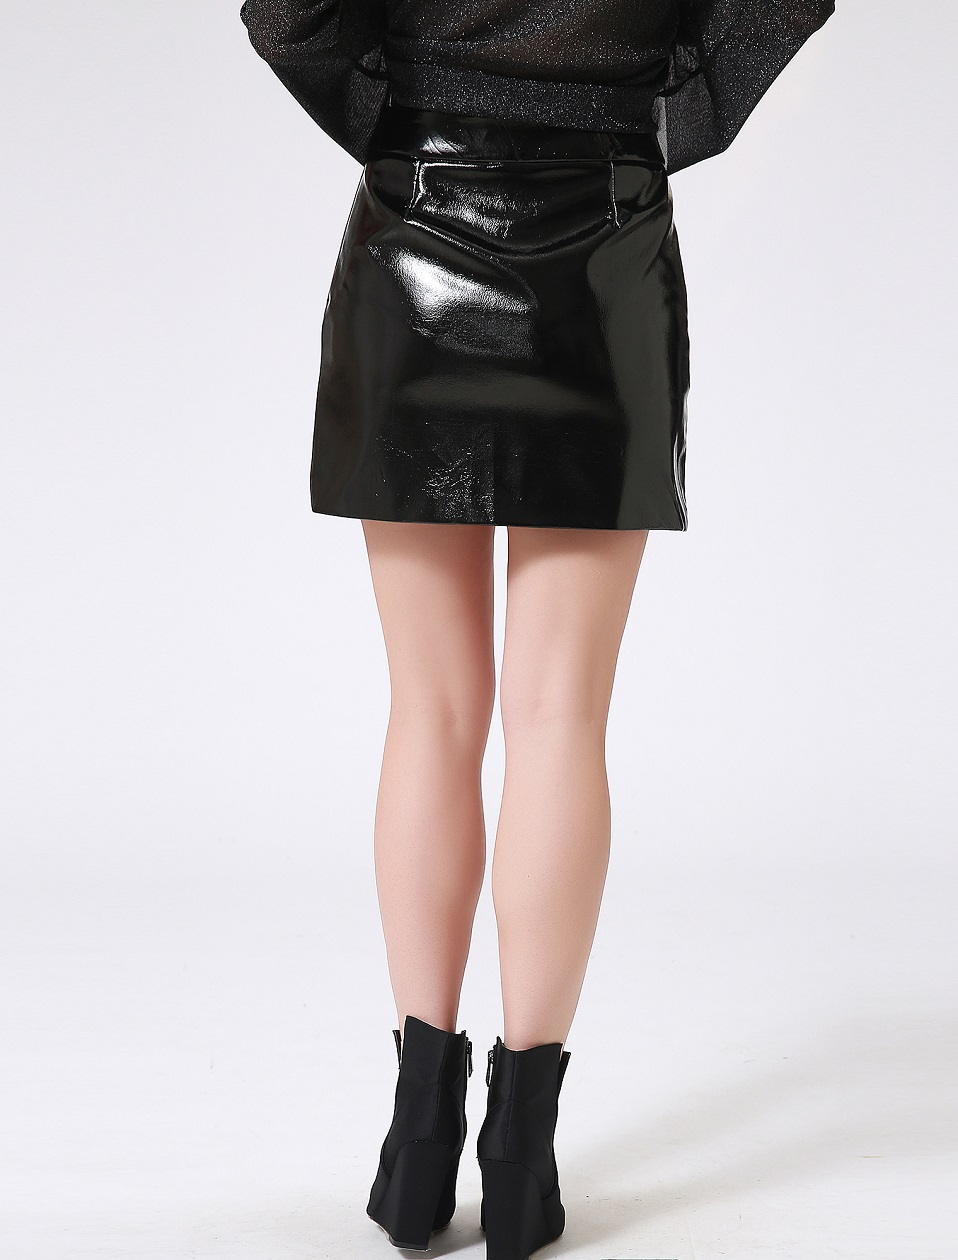 Autumn Winter Women Sexy Mini Skirt Black faux Patent Leather Female Short Pencil Skirt Zipper Fashion Streetwear Skirts Talever 7